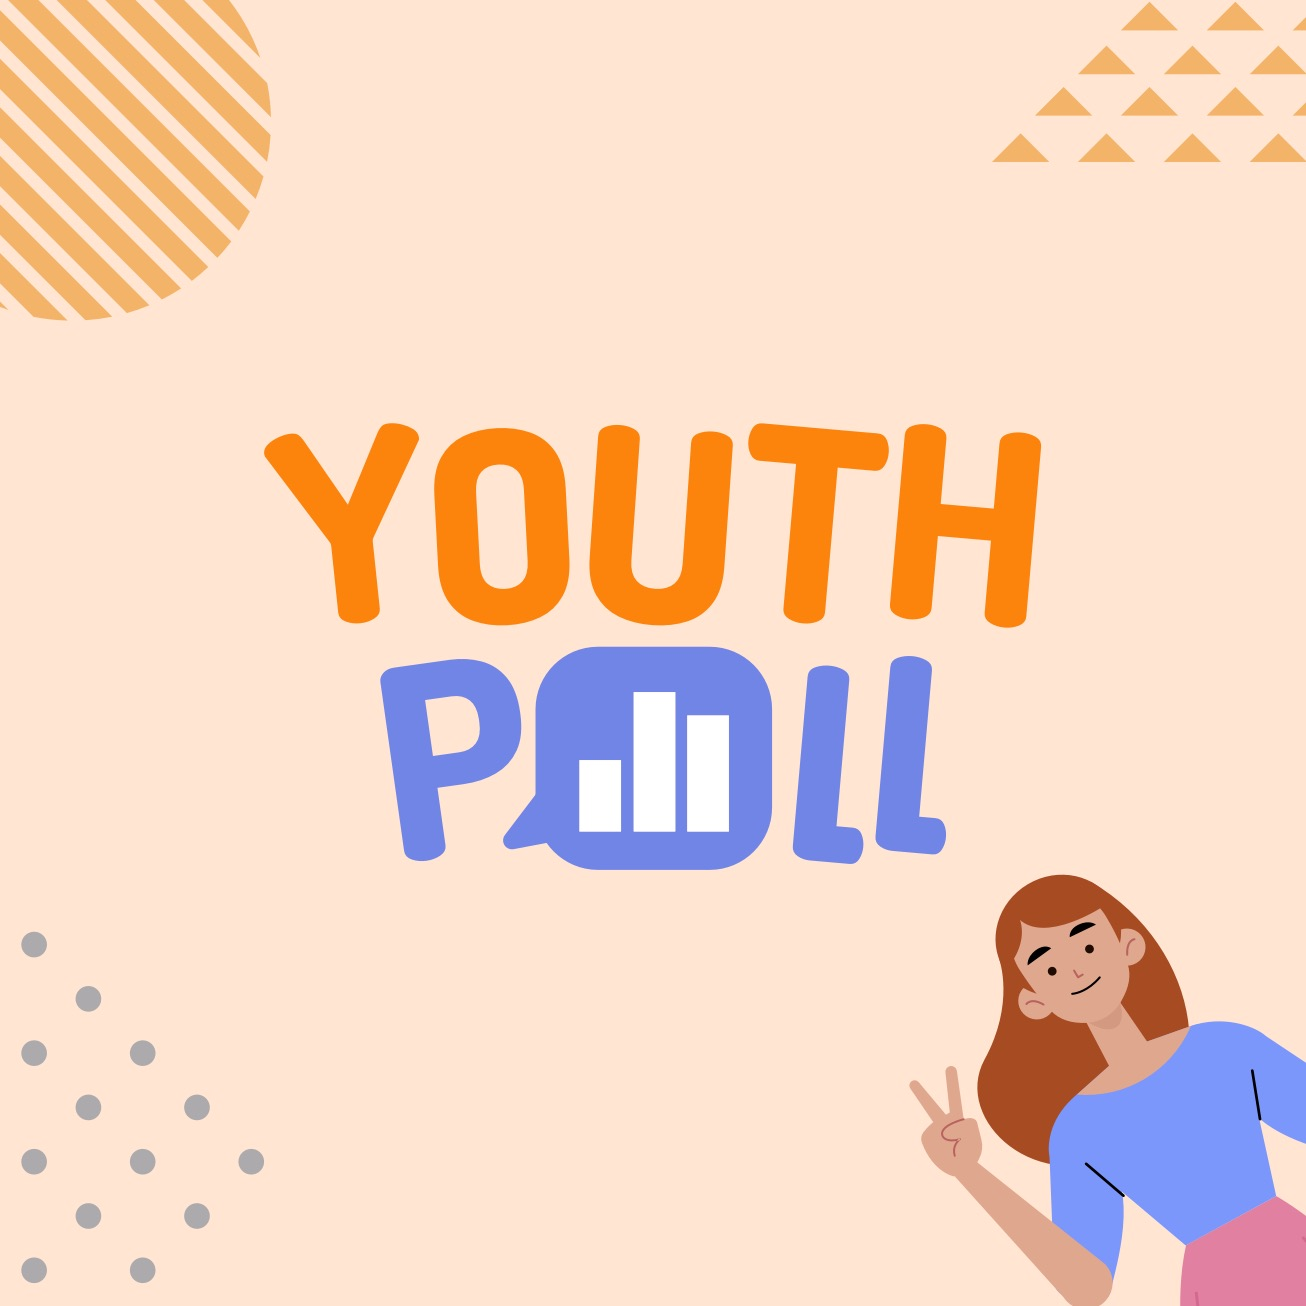 Youthpoll